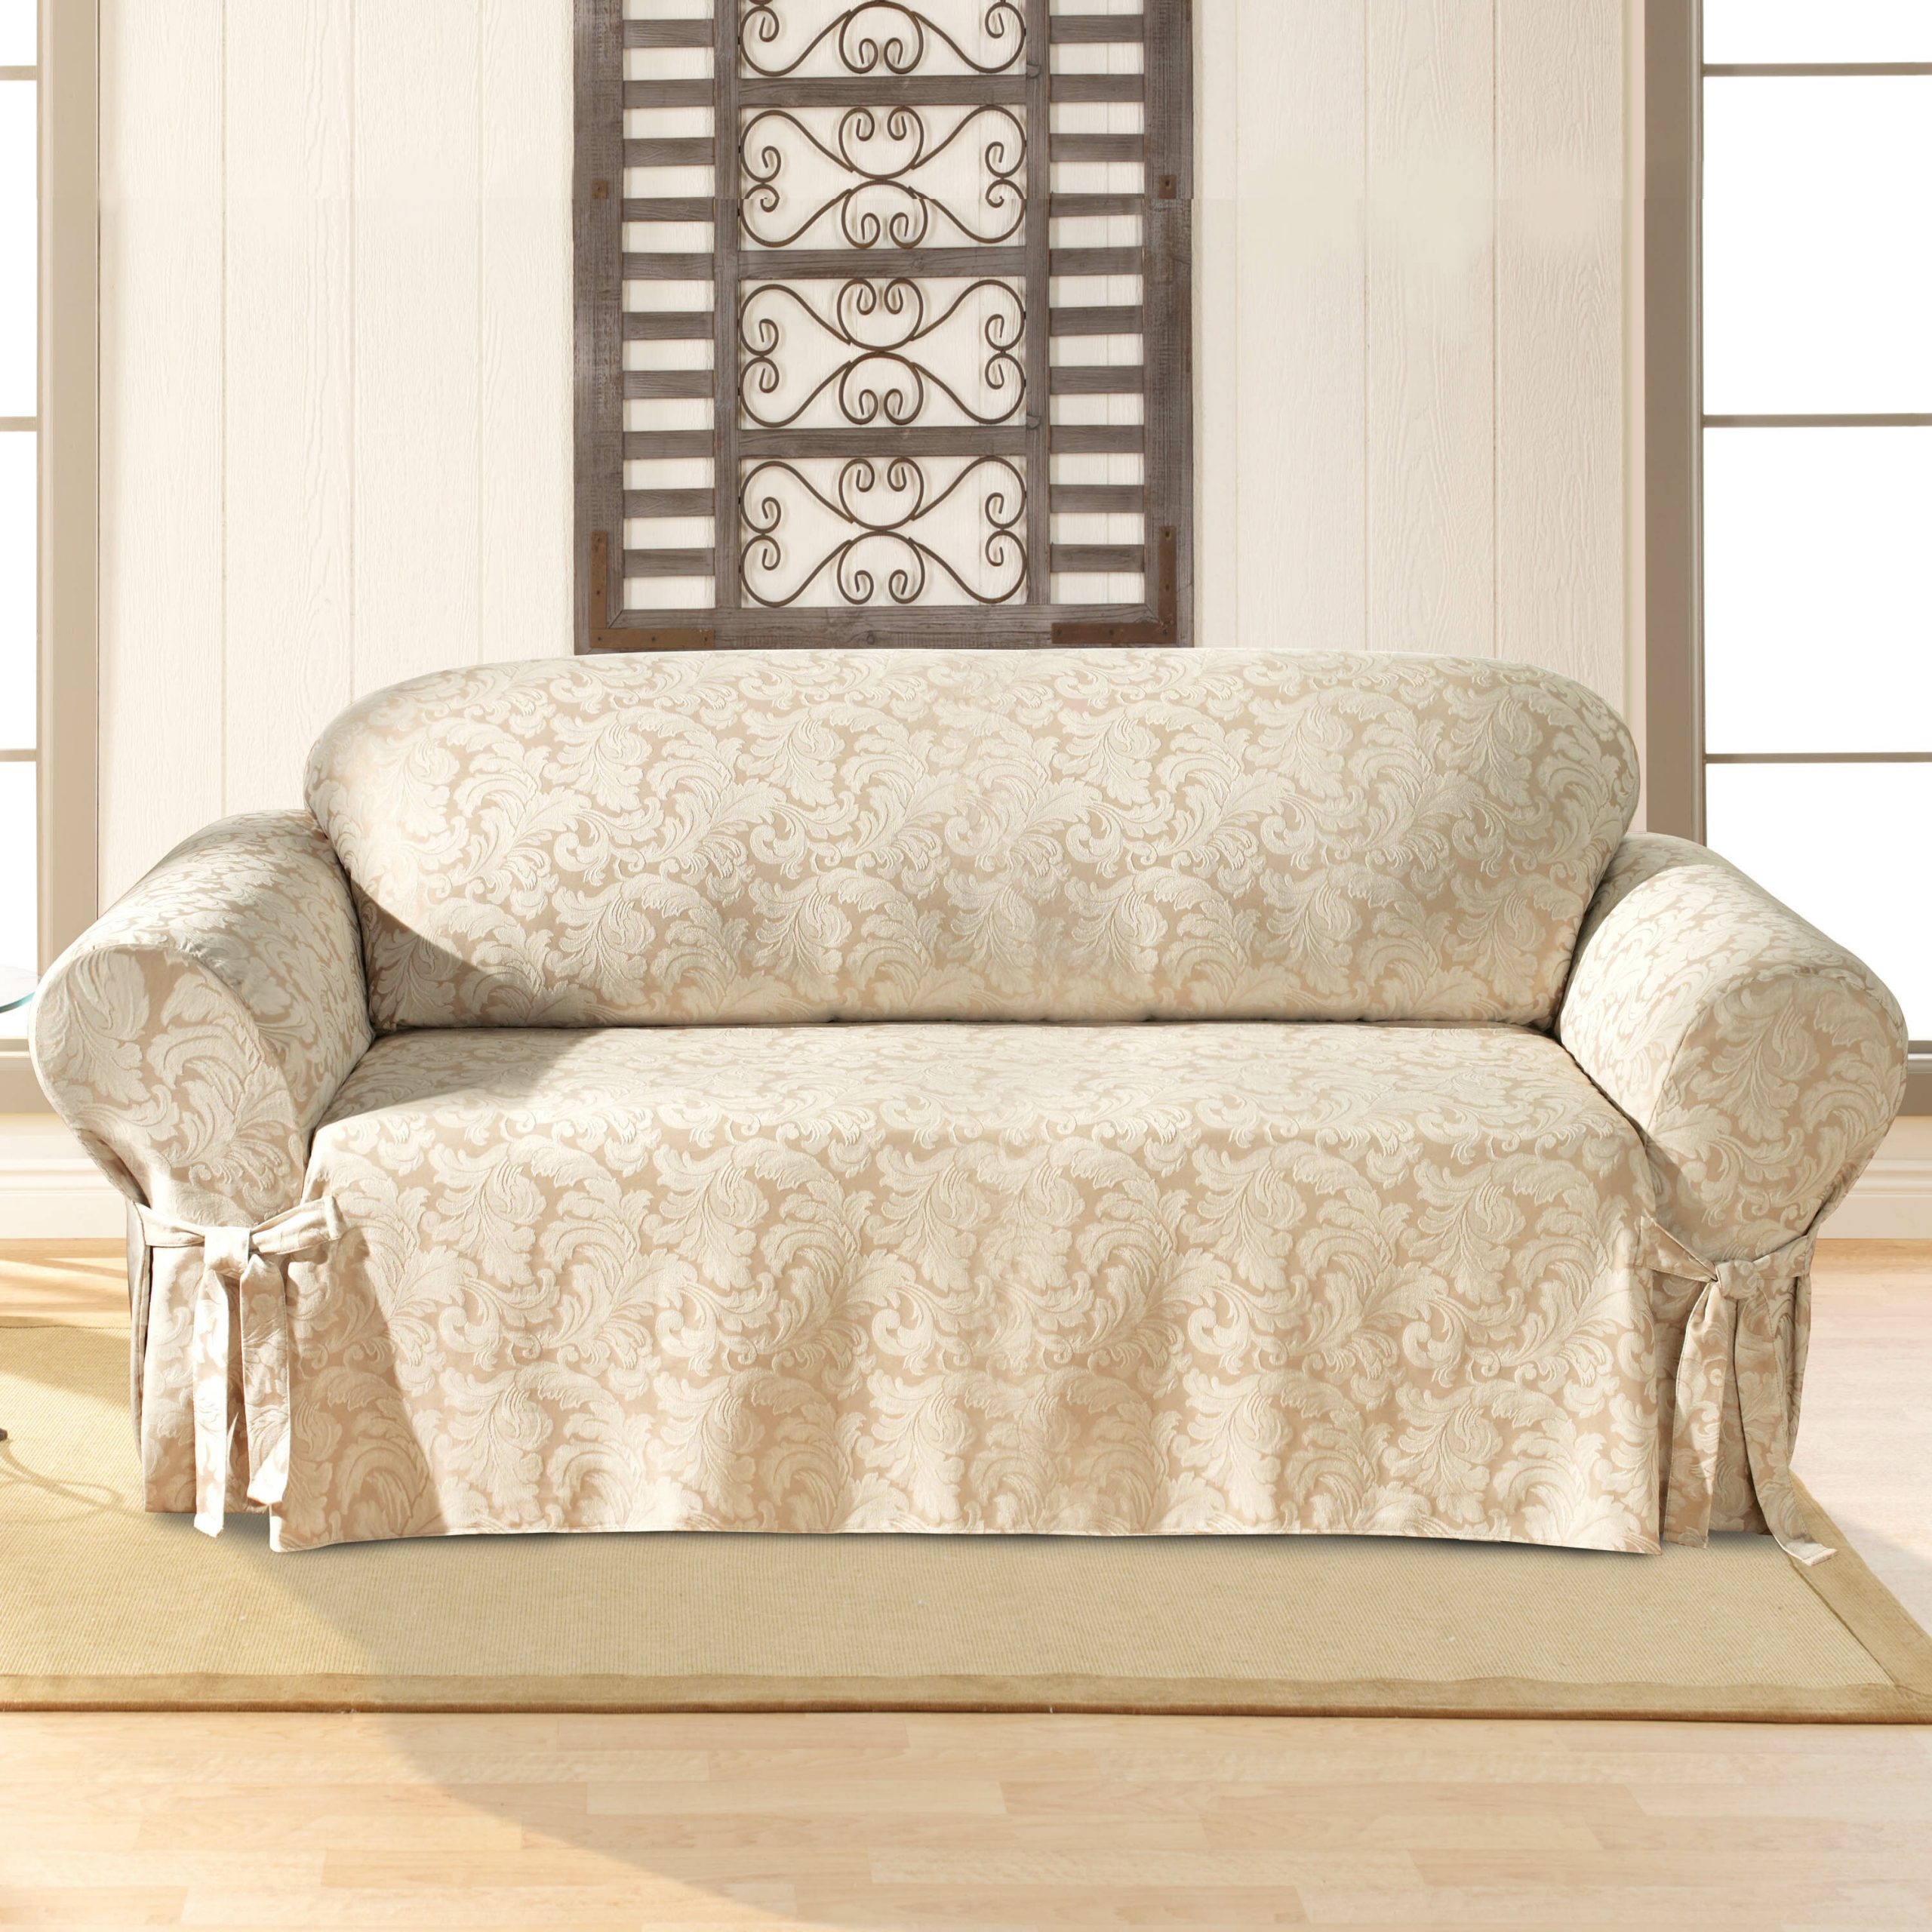 Scroll Classic Box Cushion Sofa Slipcover With Regard To Abbottsmoor Barrel Chair And Ottoman Sets (View 5 of 15)